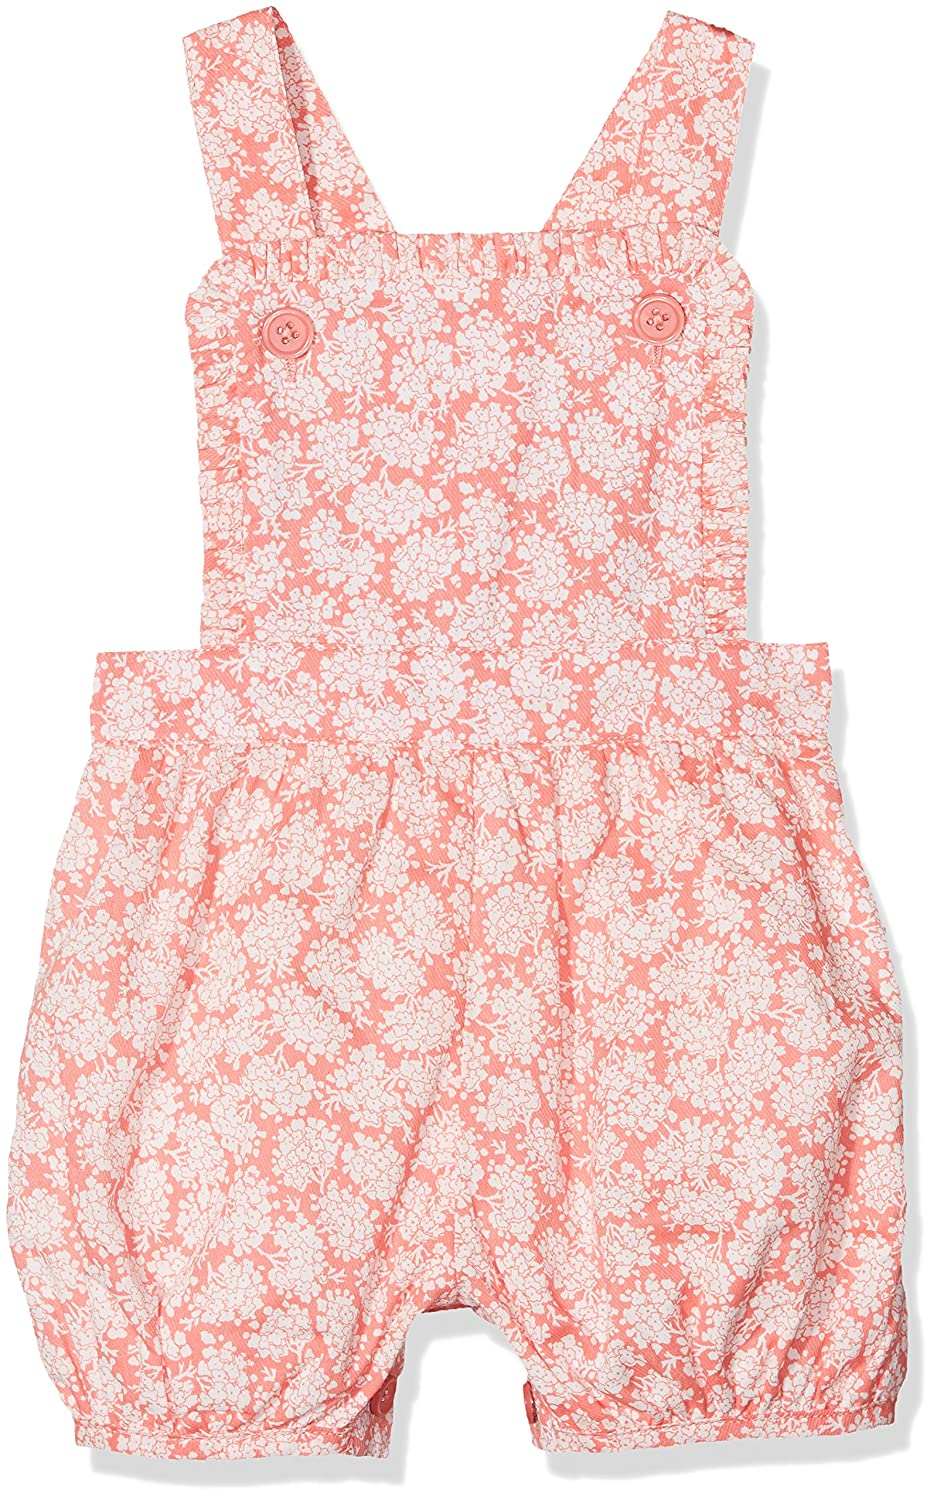 Rachel Riley Baby Girls Floral Frill Dungarees Dungarees